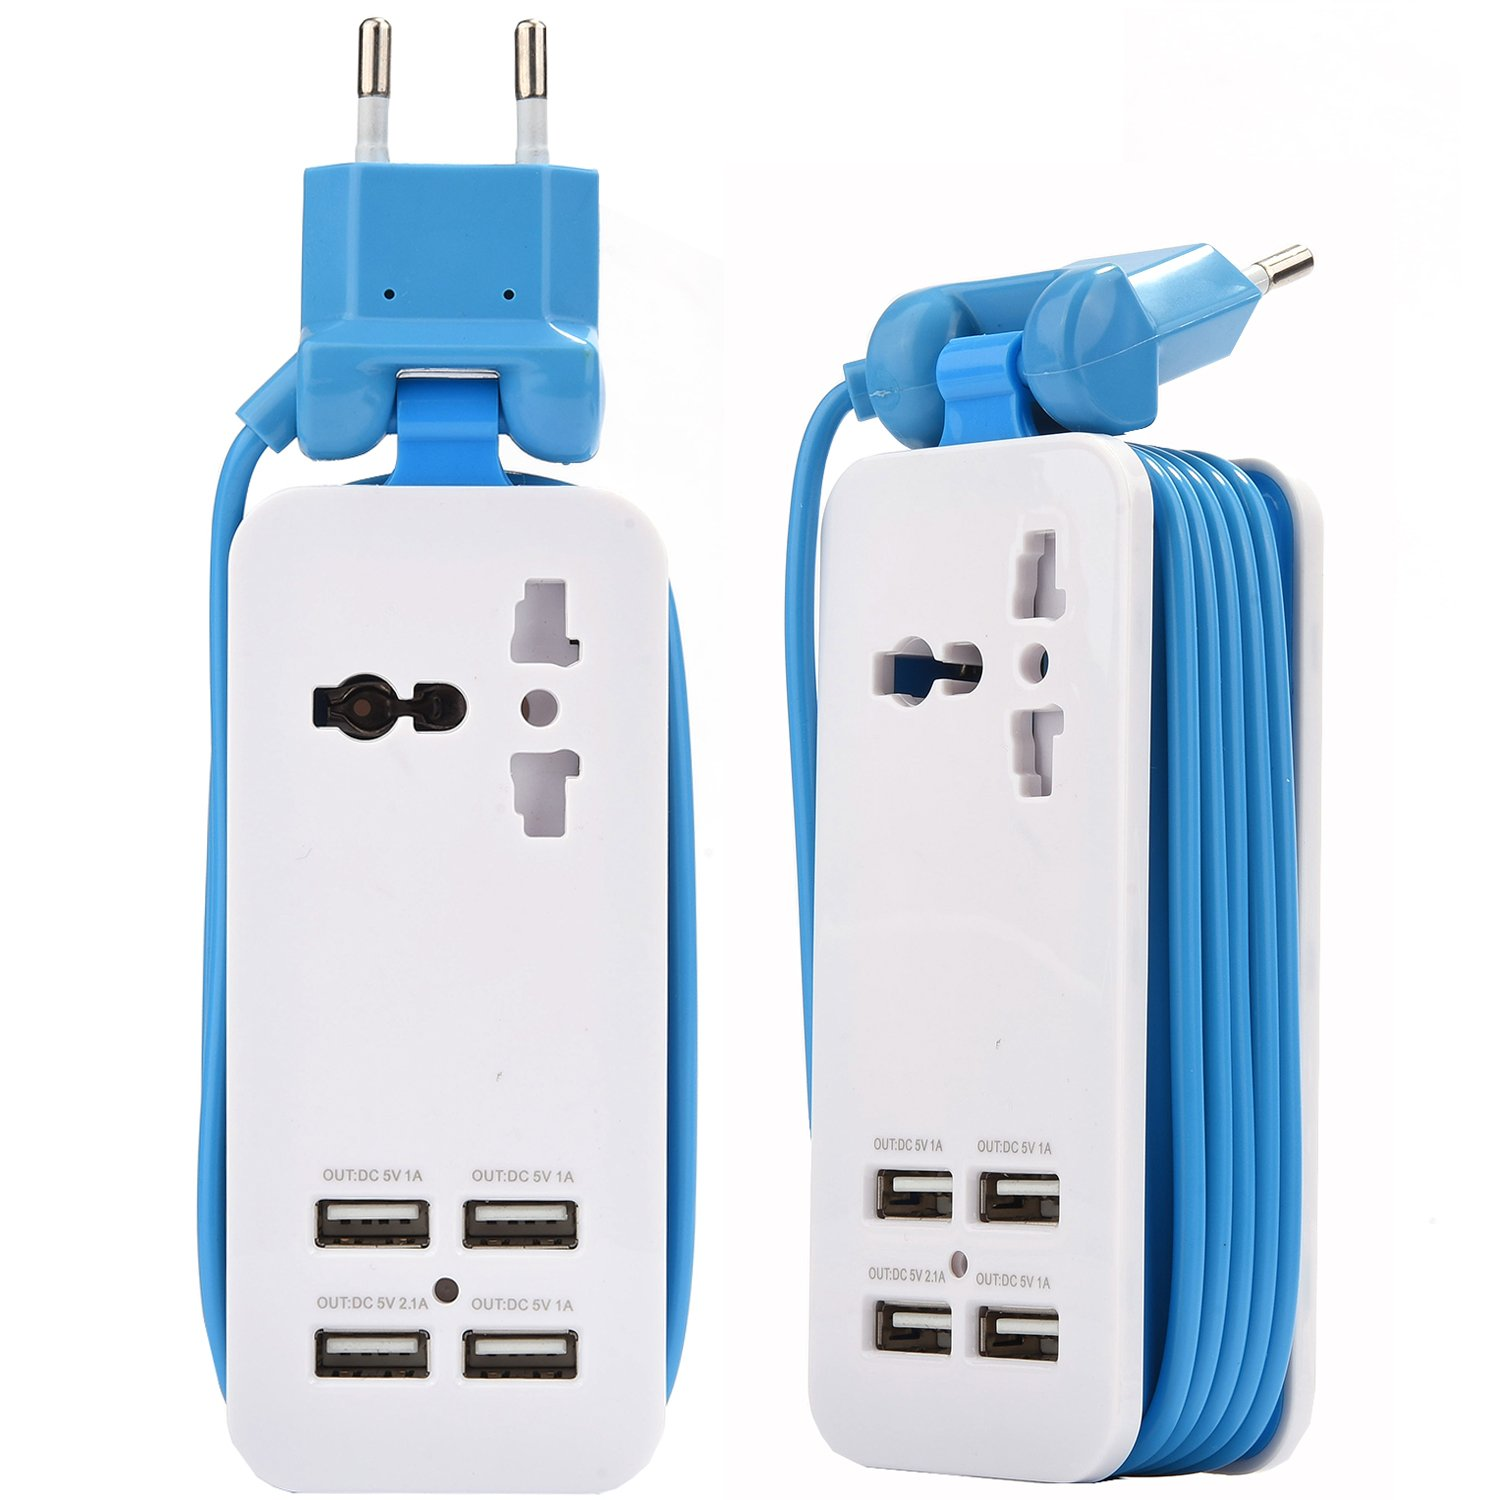 Europe USB Power Strip with 4 Ports USB Charging Station Outlets 5V 2.1A-1A 21W Universal Socket EU Plug 100V-240V Compact 5ft Extension Cord Portable Electric Power Strip for Traveling (Blue) by ETPocket